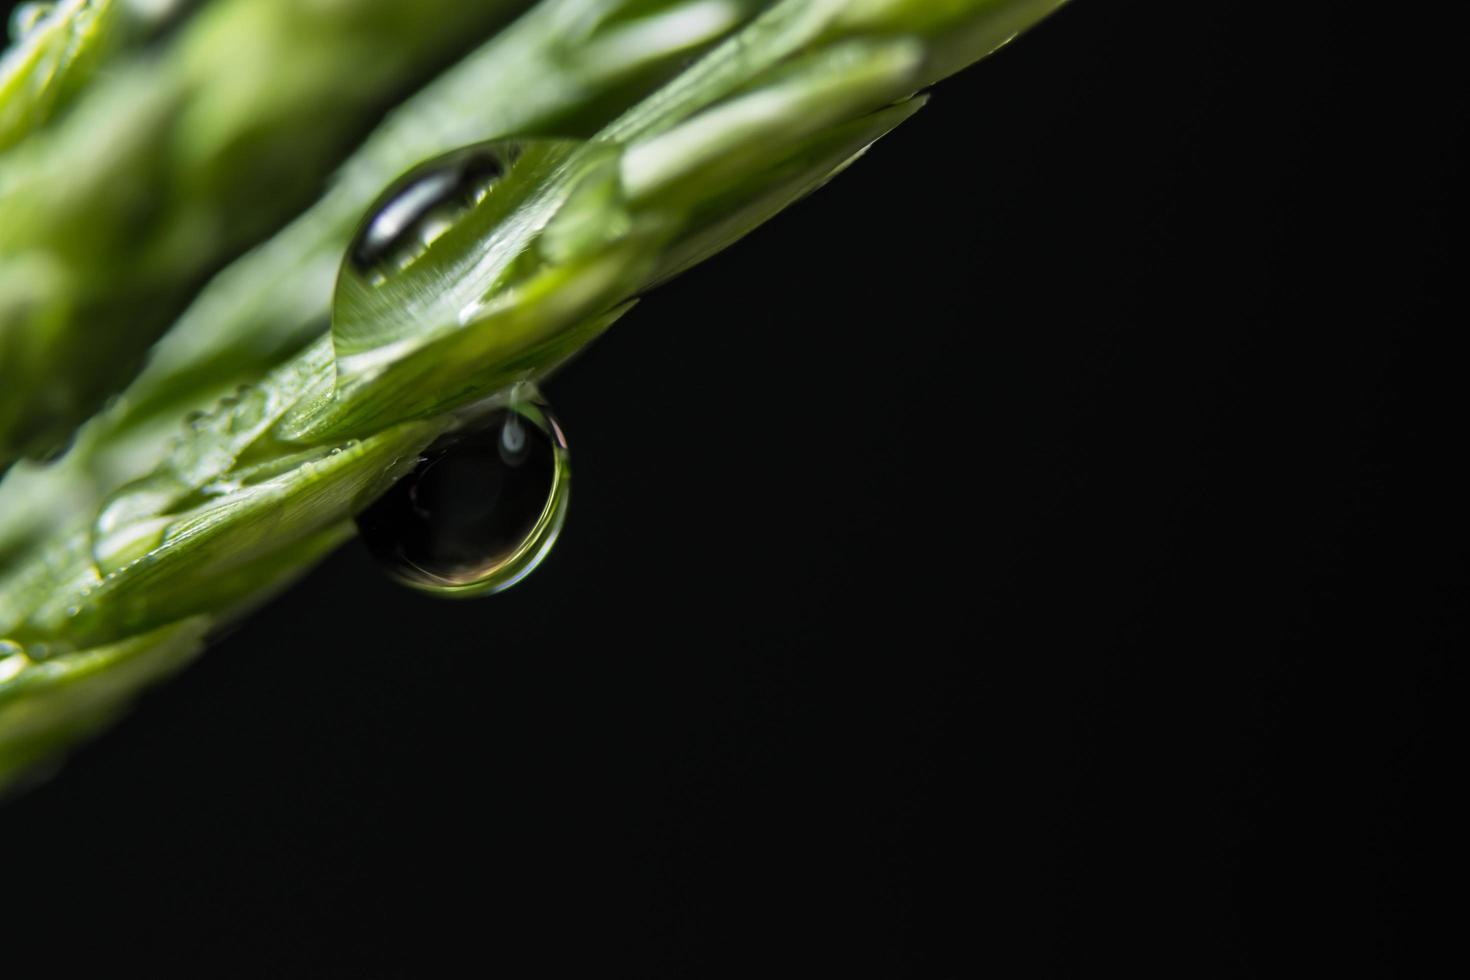 Water drops on a green plant photo